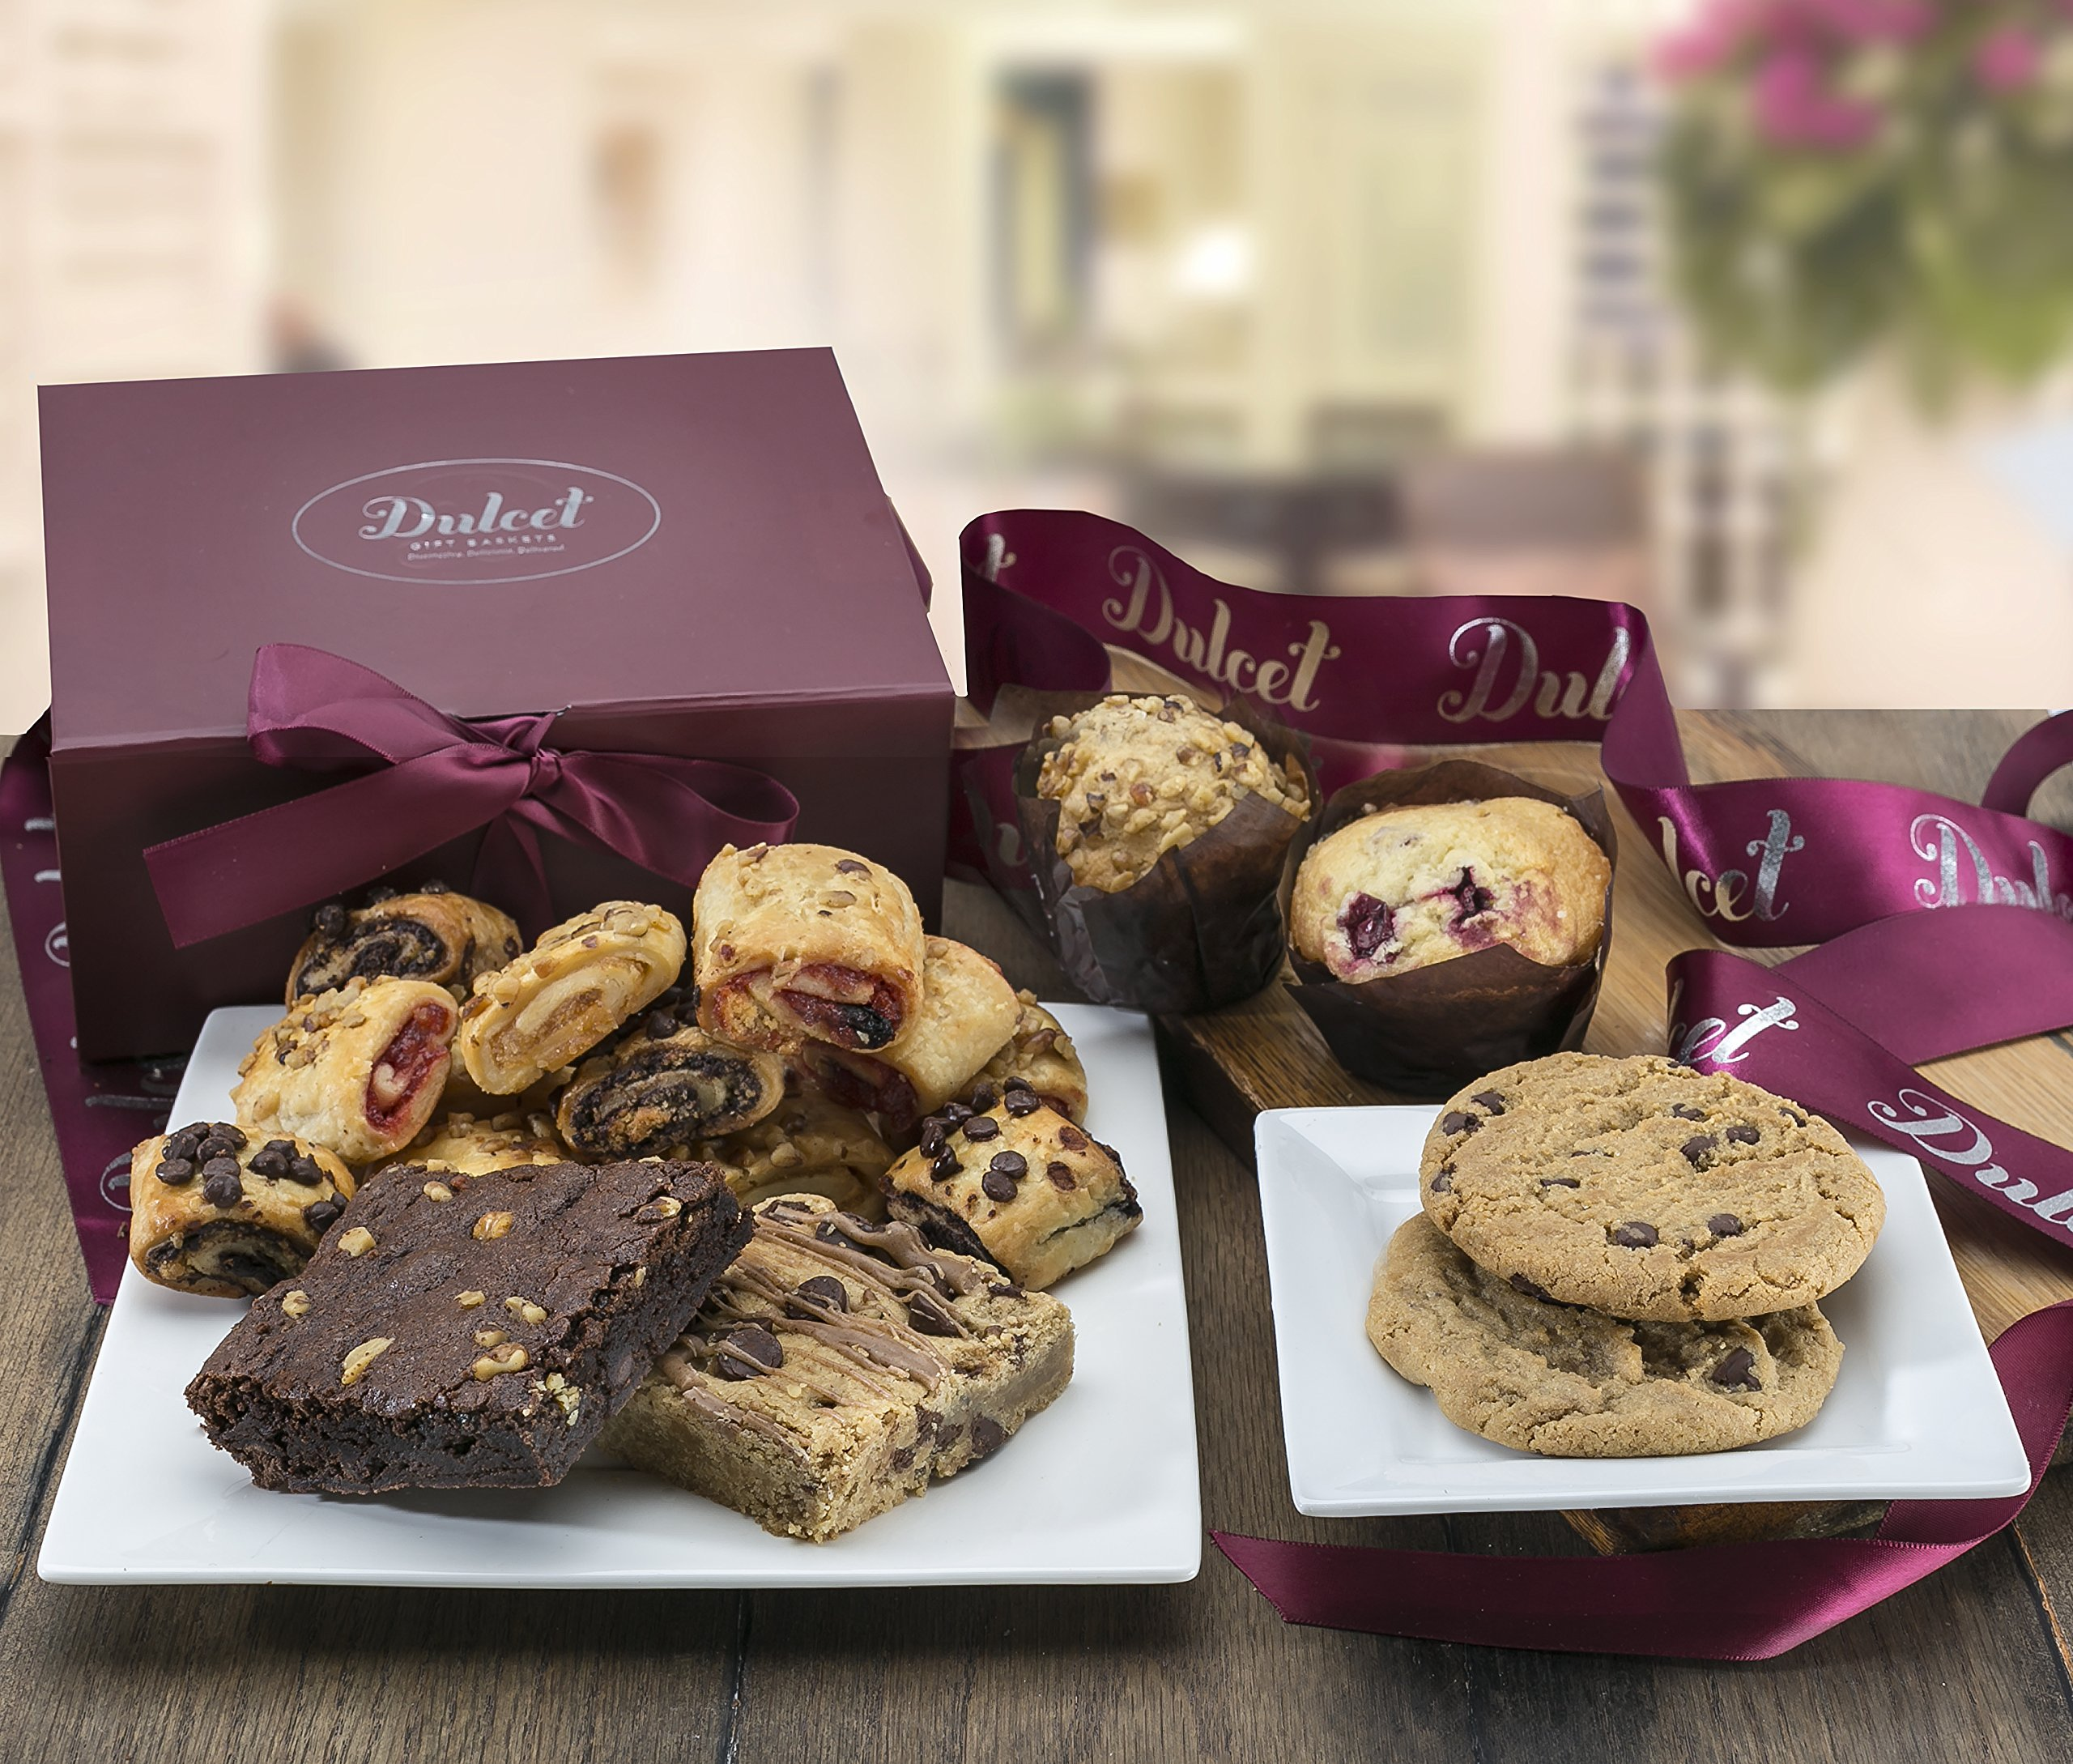 Dulcet Gift Baskets-Includes Scrumptious Assortment of Freshly Baked Goods: Walnut Brownies, Blondie, Cranberry and Banana Nut Muffin, Chocolate Chip Cookies, and Assorted Rugelach, Great & Top Gift!